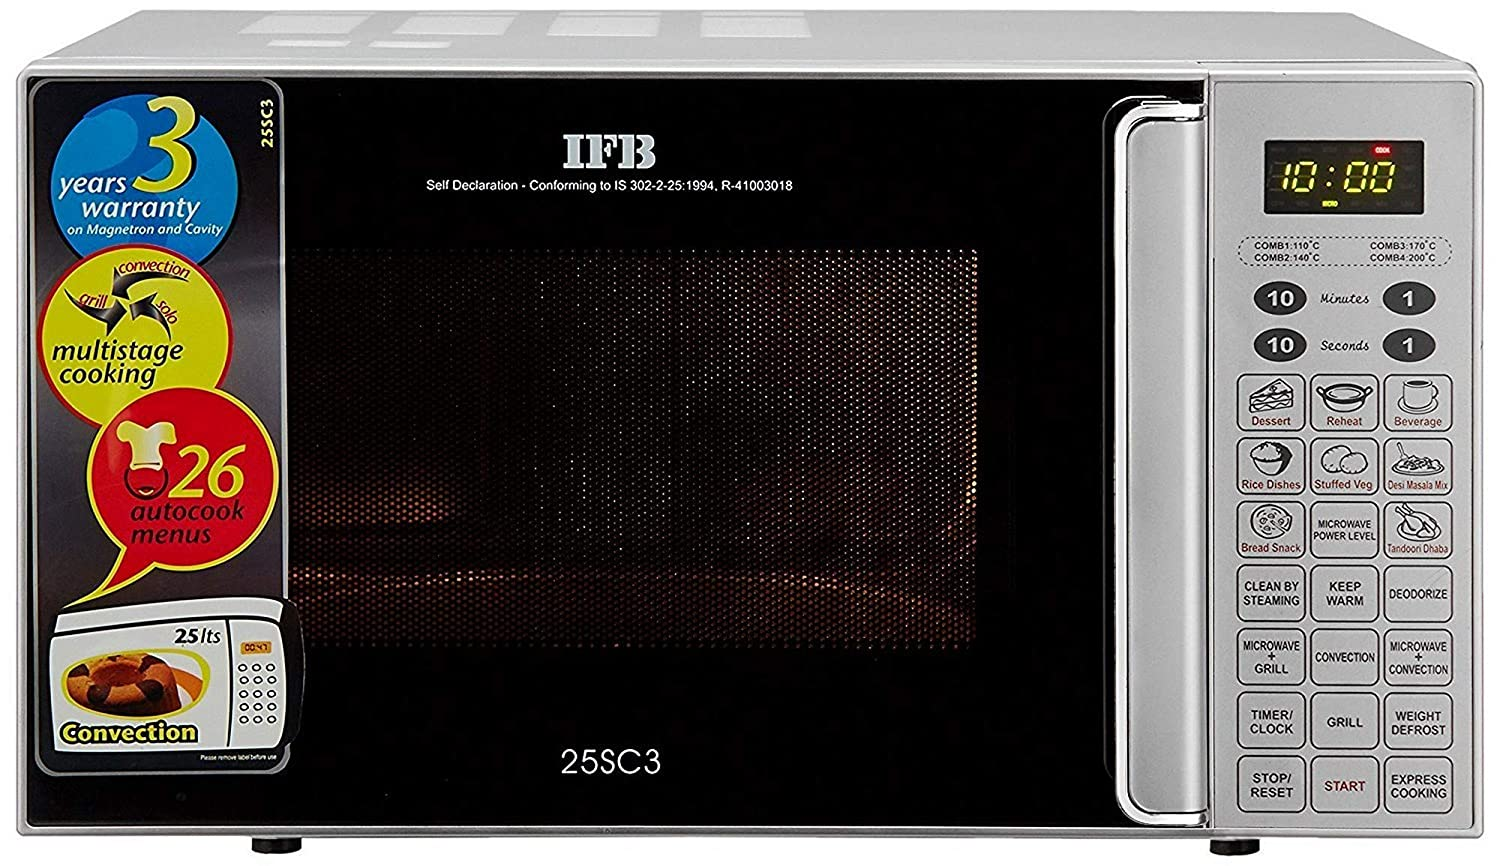 IFB 25 L Convection Microwave Oven  25SC3, Metallic Silver, With Starter Kit  Microwave Ovens